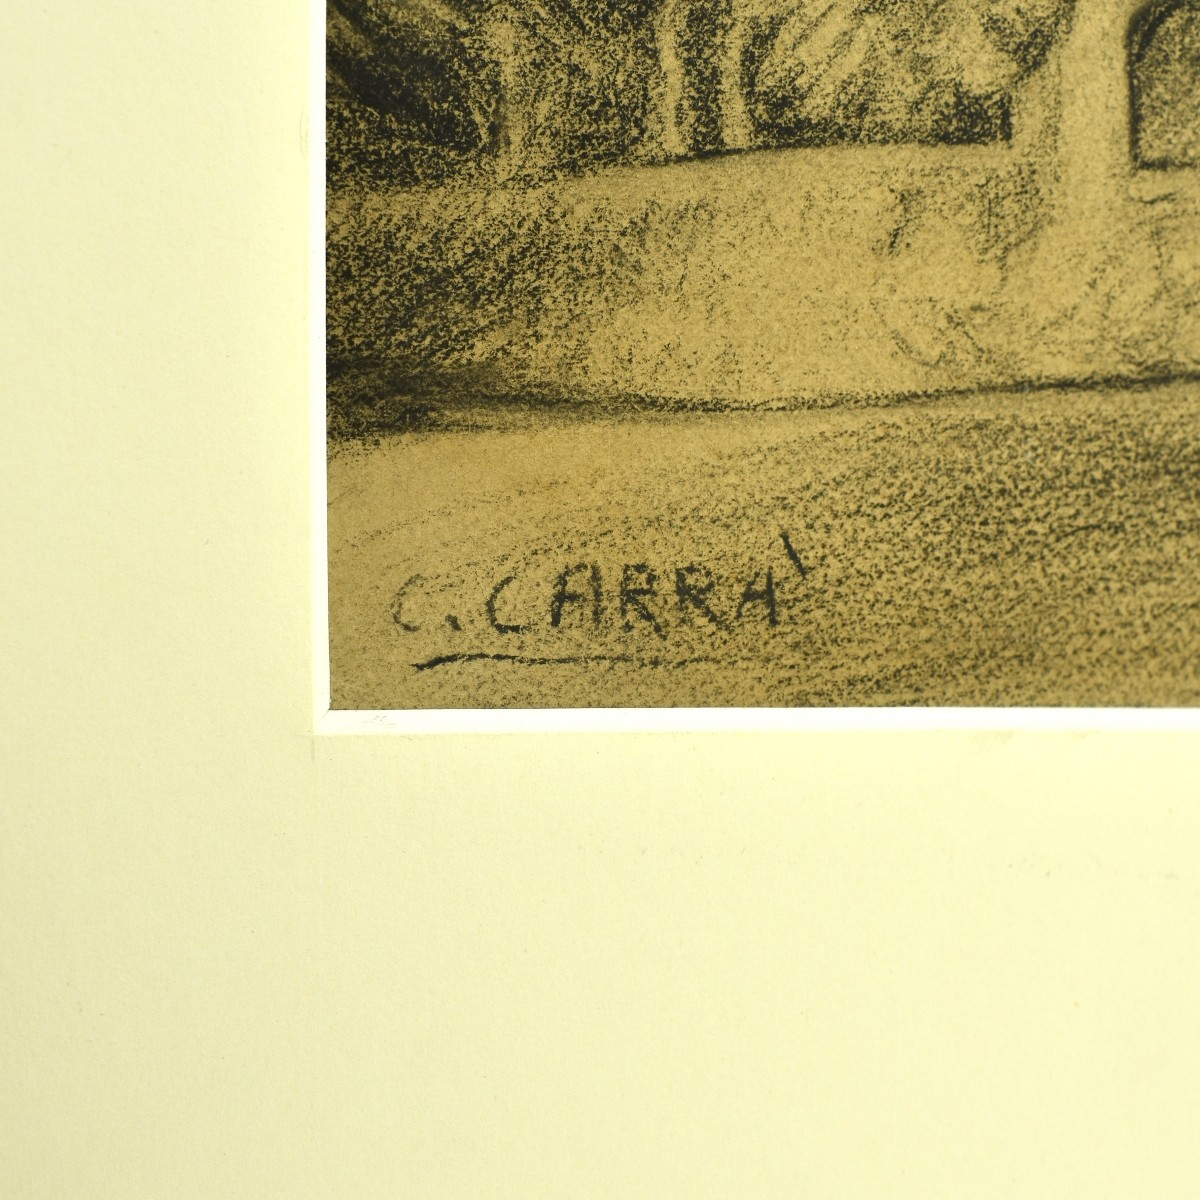 Carlo Carrà, Italian (1881–1966) Charcoal on card